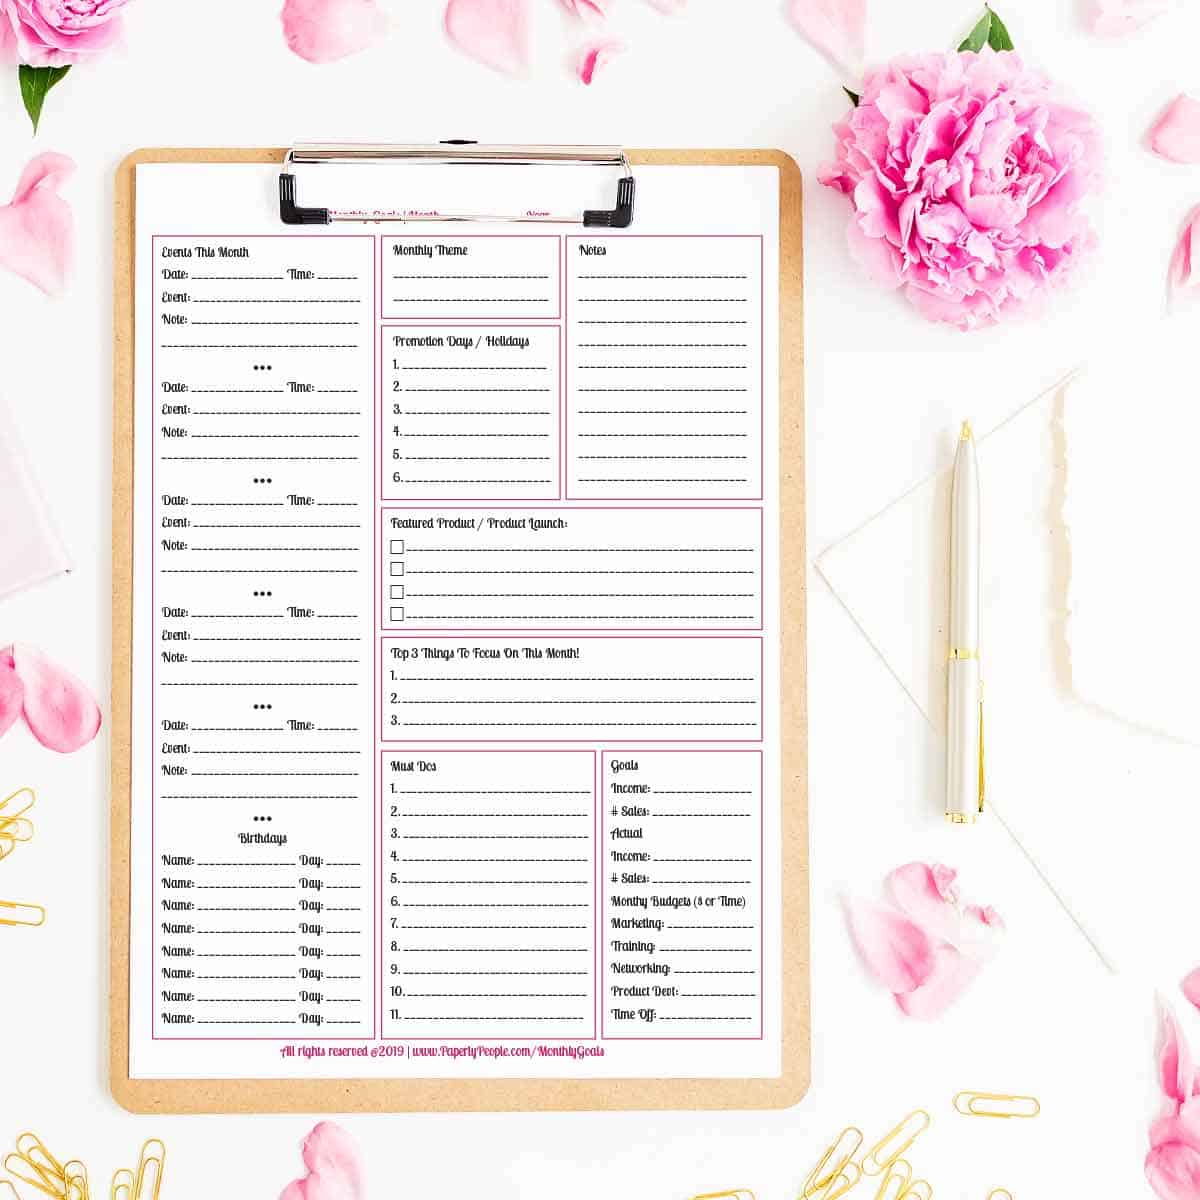 Monthly Planner Pages and Goals - Printable planner pages for Staples ARC Notebook or 3 Ring Binders.